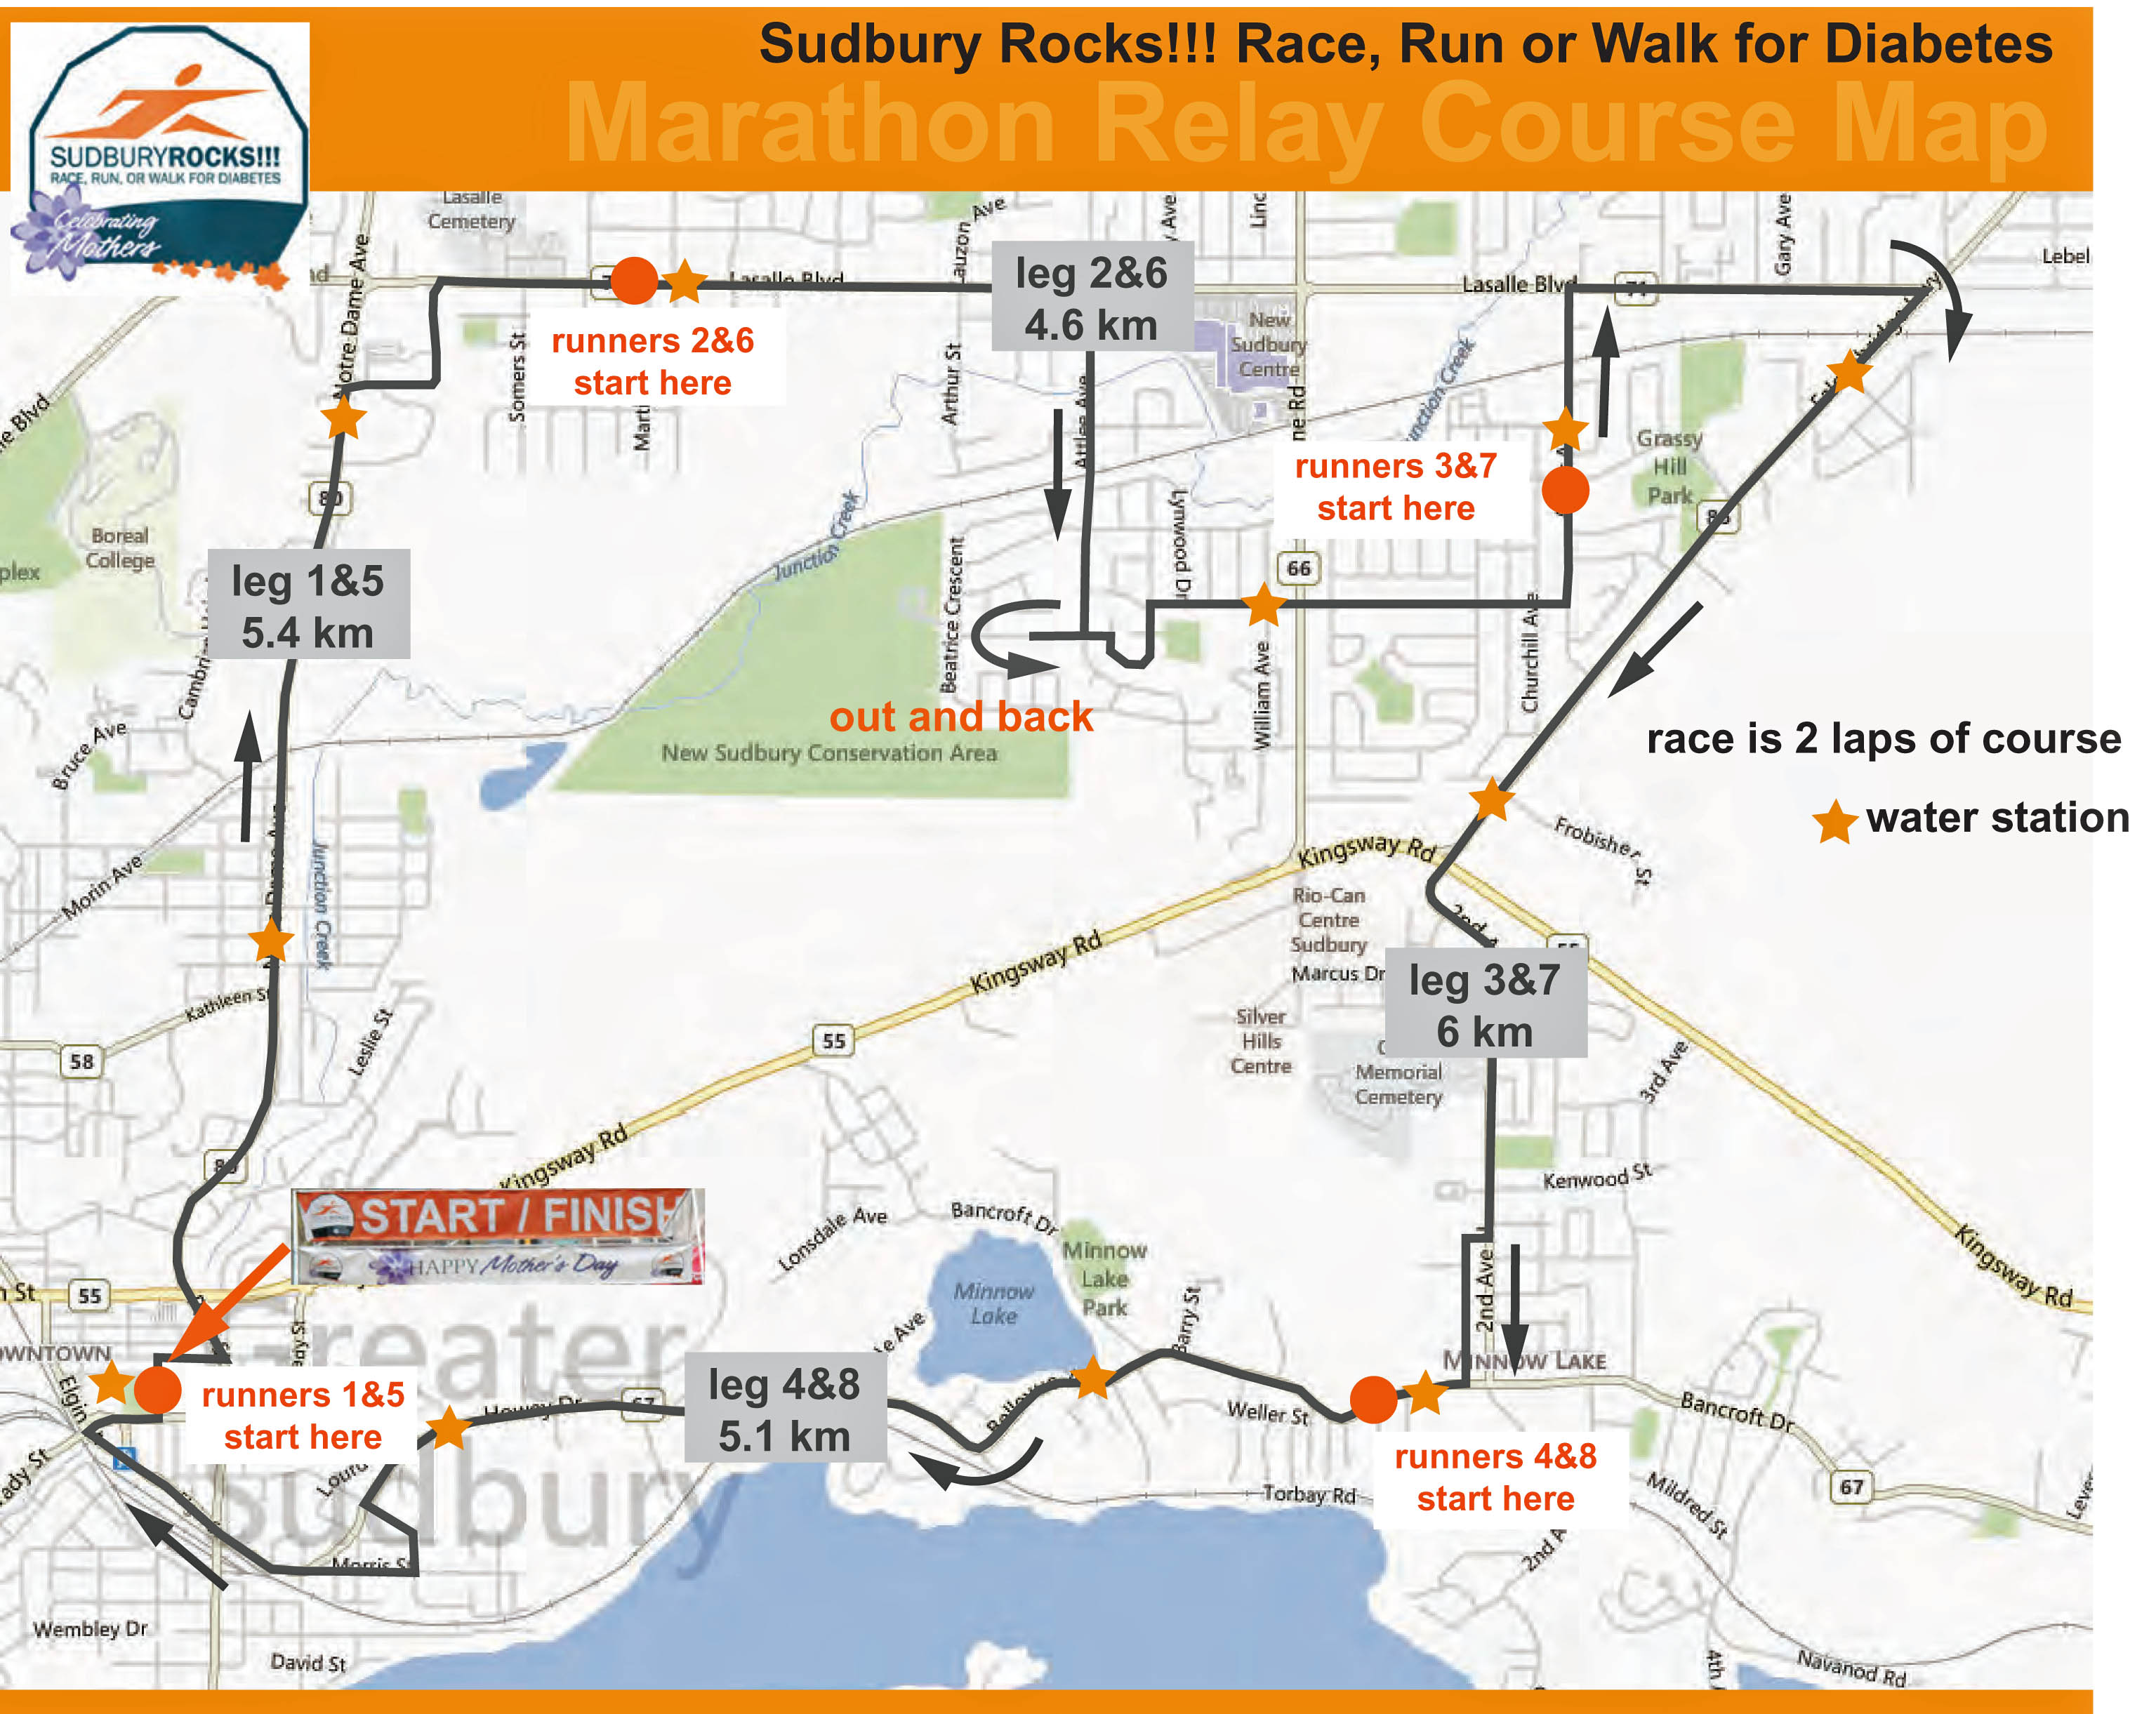 Sudbury Rocks Marathon Relay Route